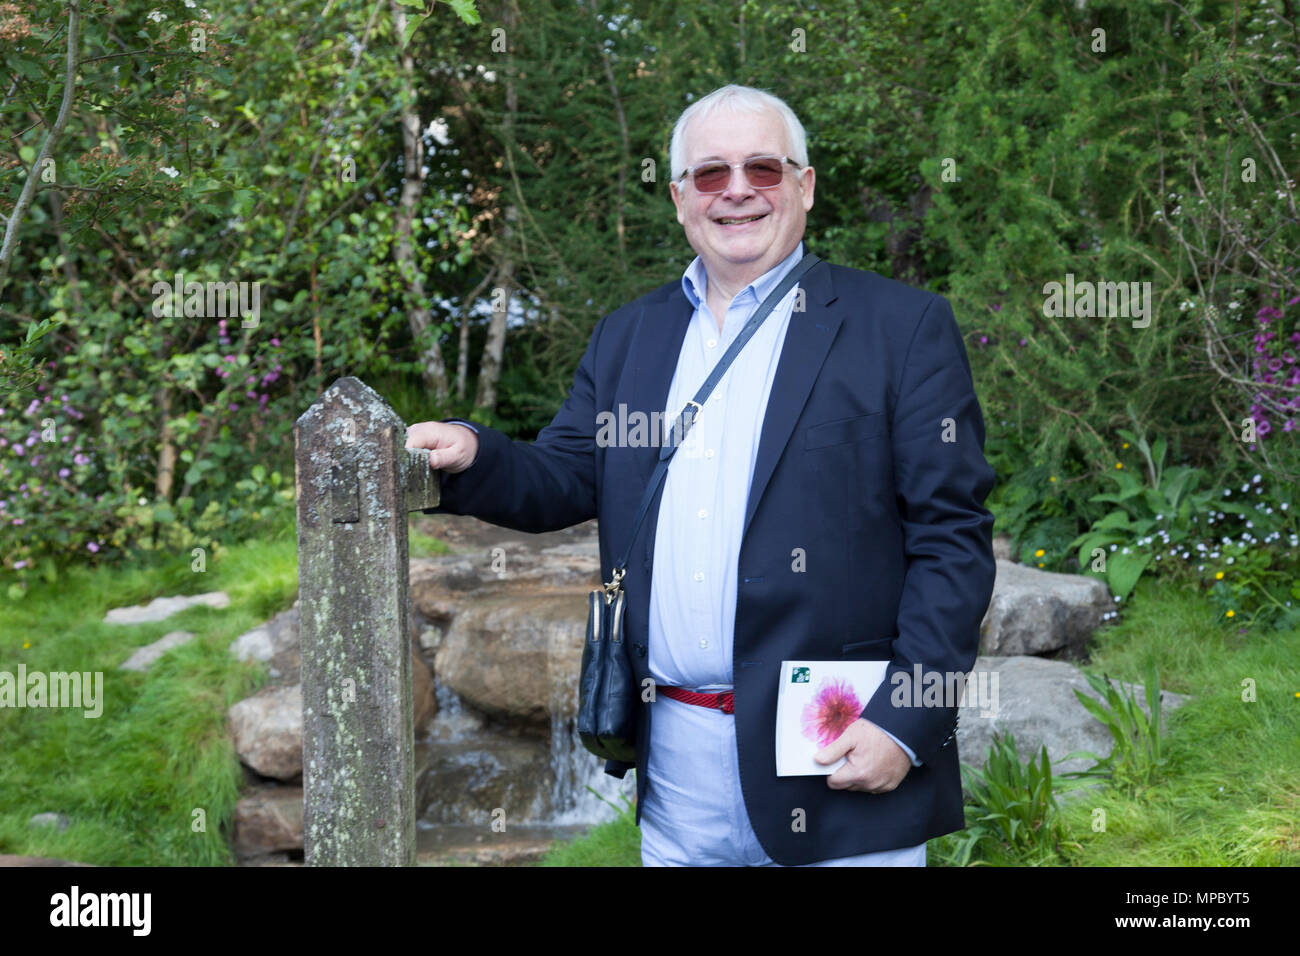 Chelsea, London, UK. 21st May, 2018. Chelsea, London, UK. 21st May 2018. Sir Christopher Biggins on the Welcome to Yorkshire garden at Chelsea Flower Show 2018, designed by Mark Gregory for Landformconsultants.co.uk Credit: Jenny Lilly/Alamy Live News - Stock Image